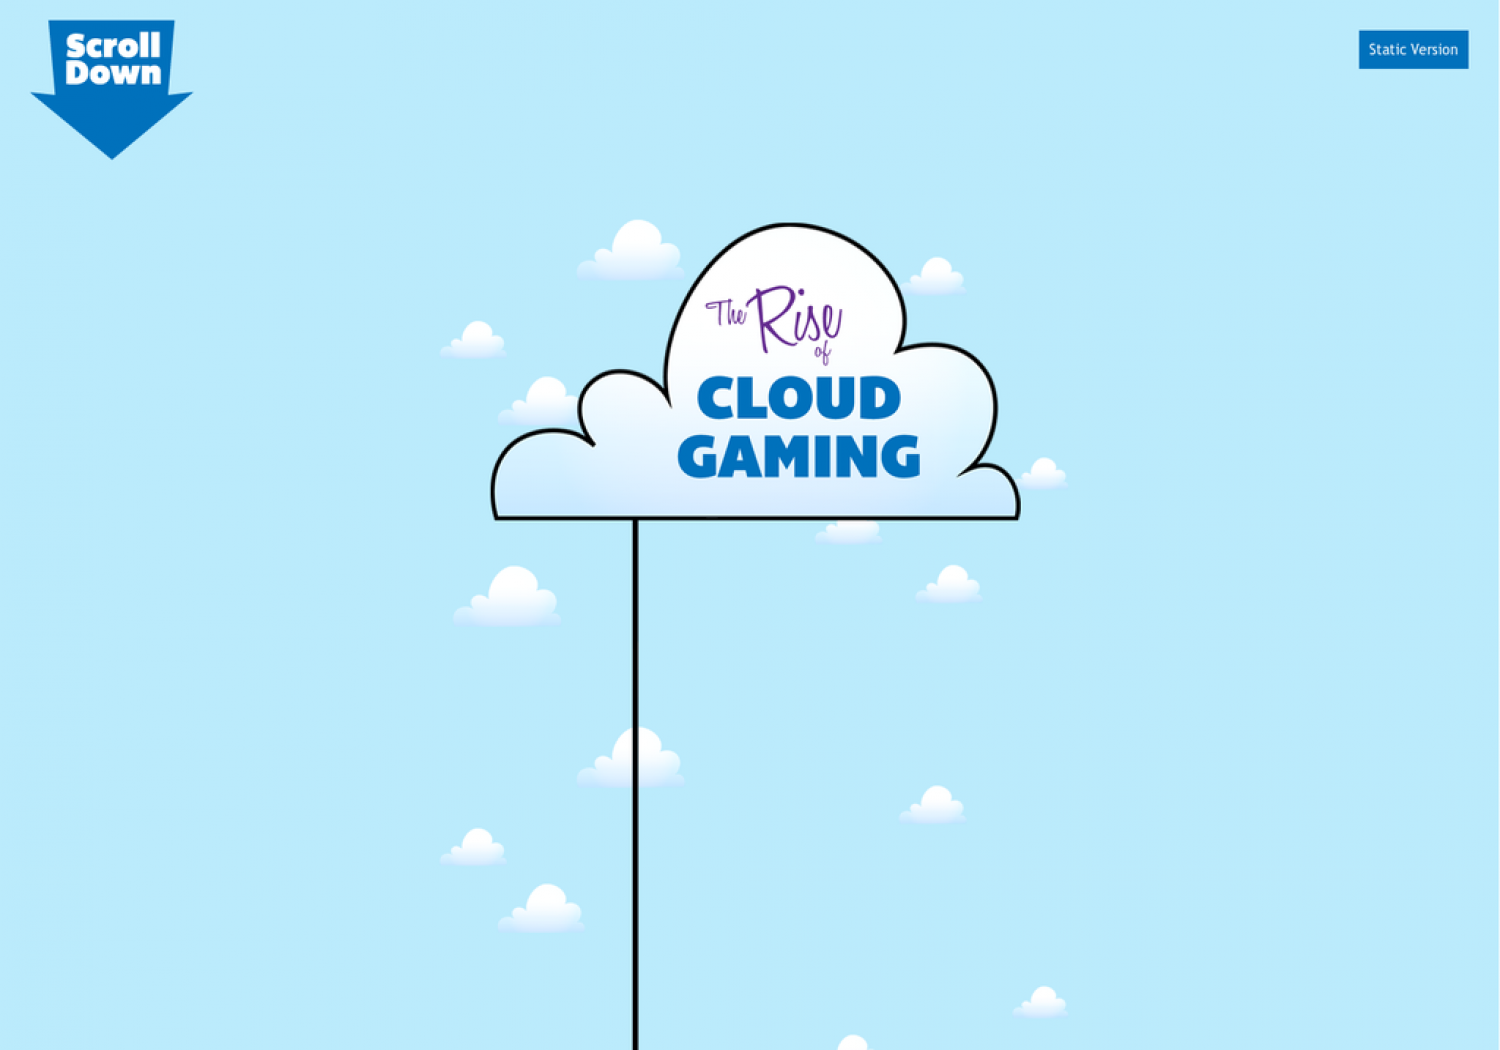 The Rise of Cloud Gaming Infographic